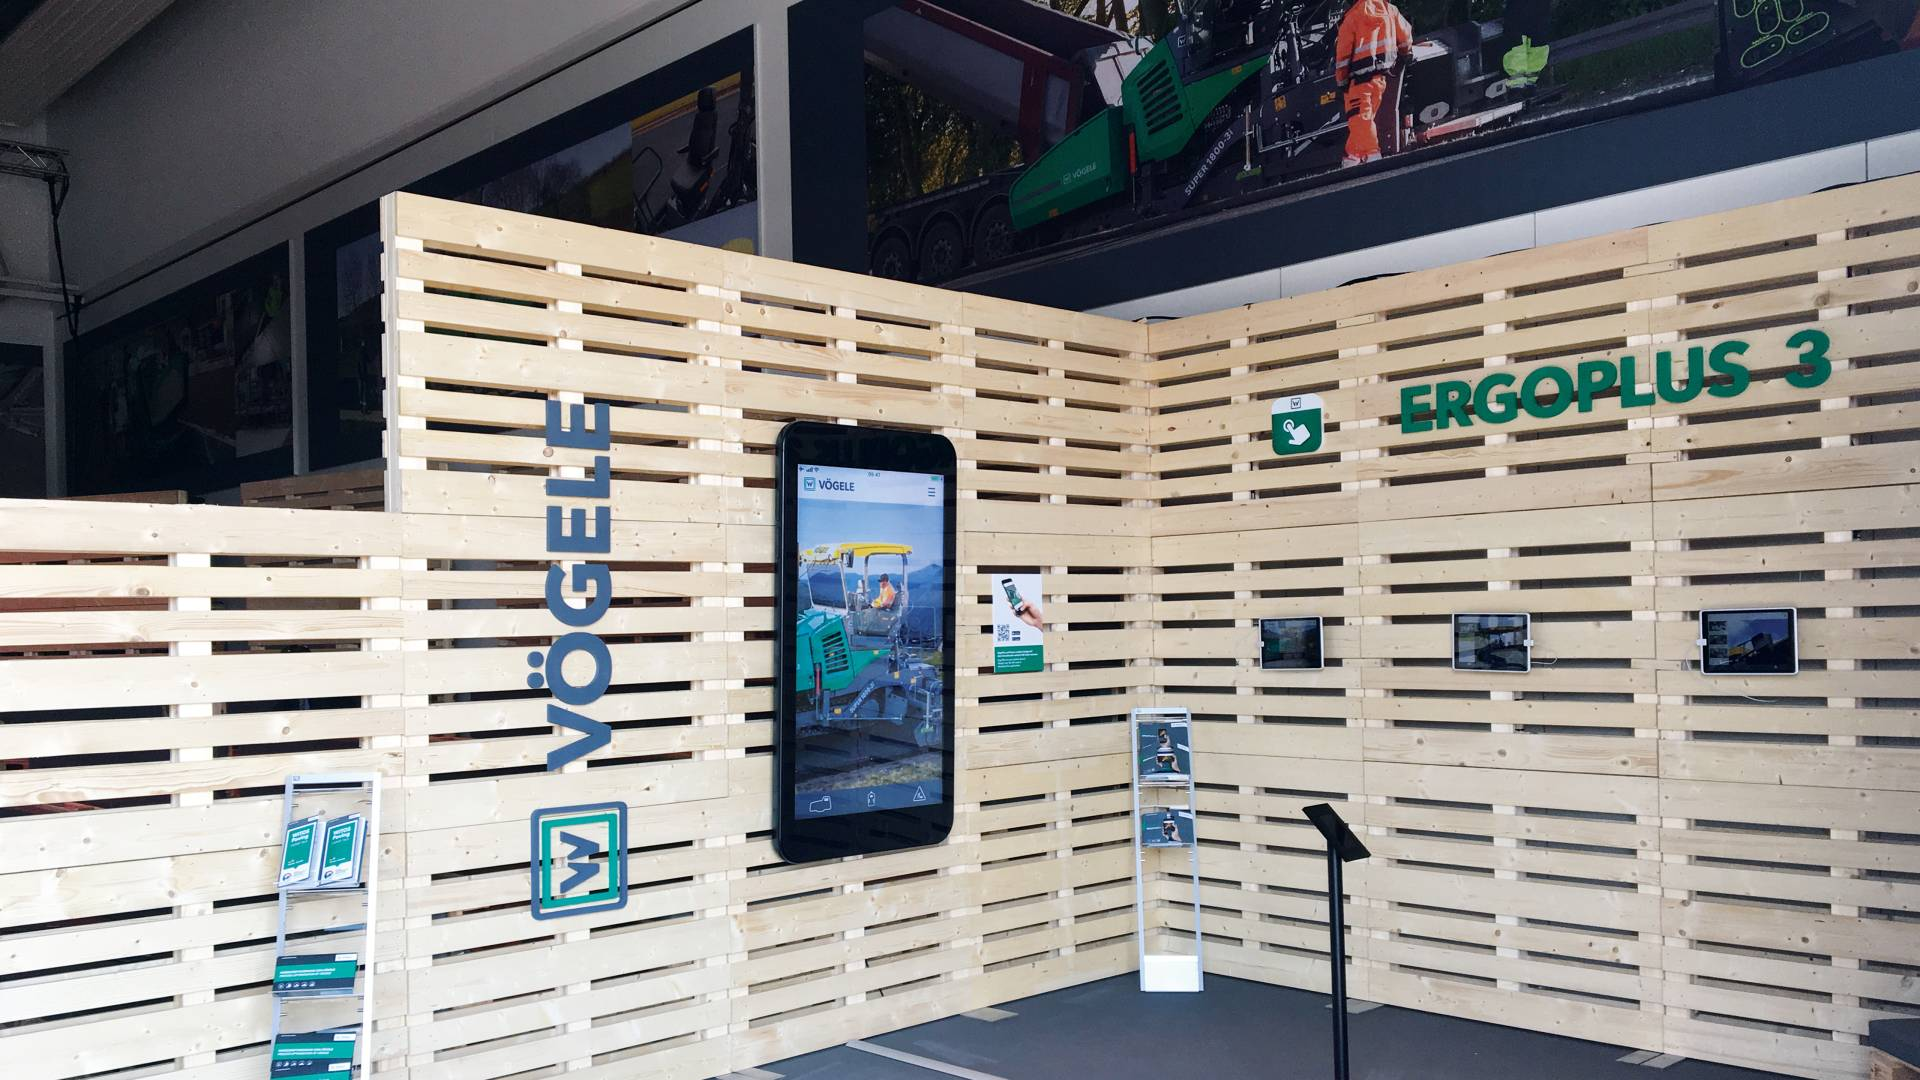 Large smartphone with the Vögele app at the stand